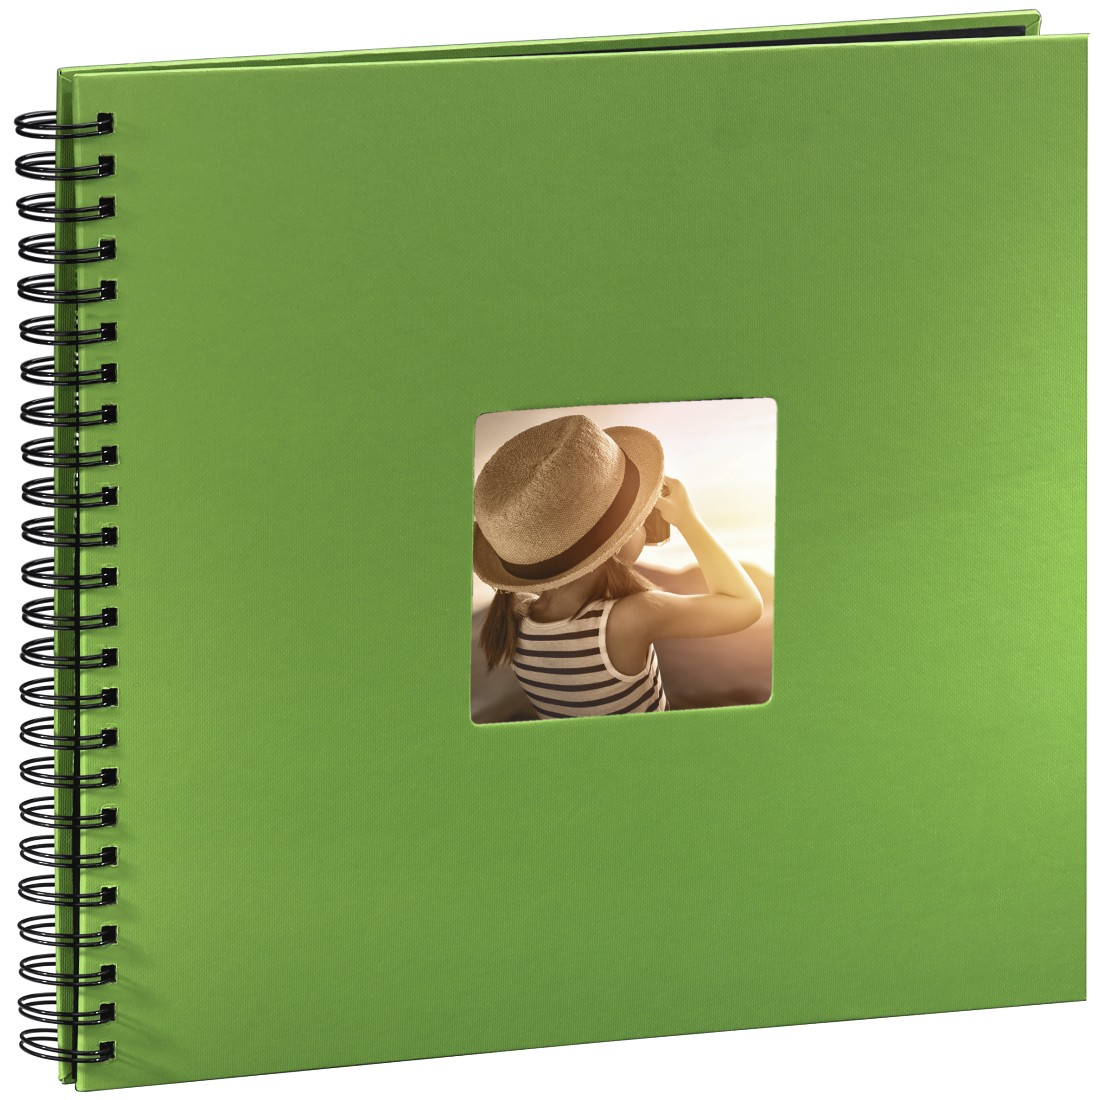 abx2 High-Res Image 2 - Hama, Fine Art Spiralbound Album, 36 x 32 cm, 50 black pages, apple-green